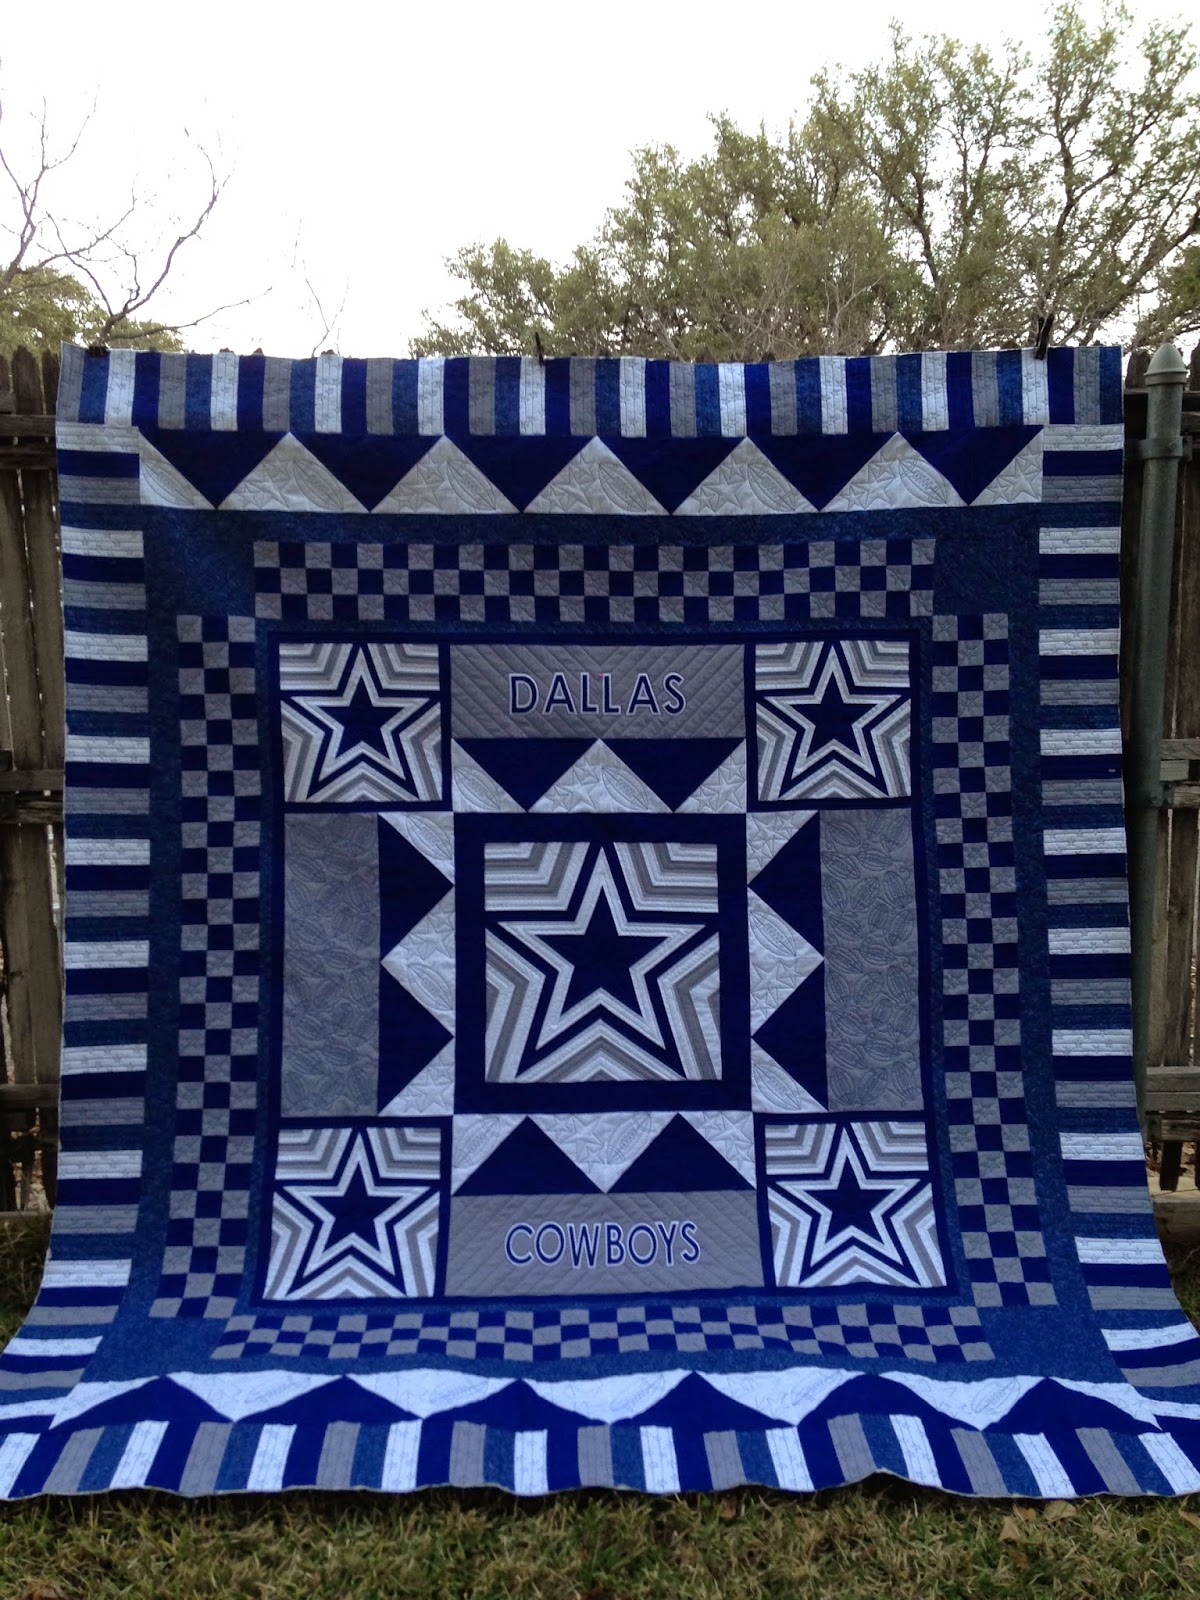 Dallas Cowboys Quilting Eye Candy | The Quilting Queen Online : cowboy quilt pattern - Adamdwight.com